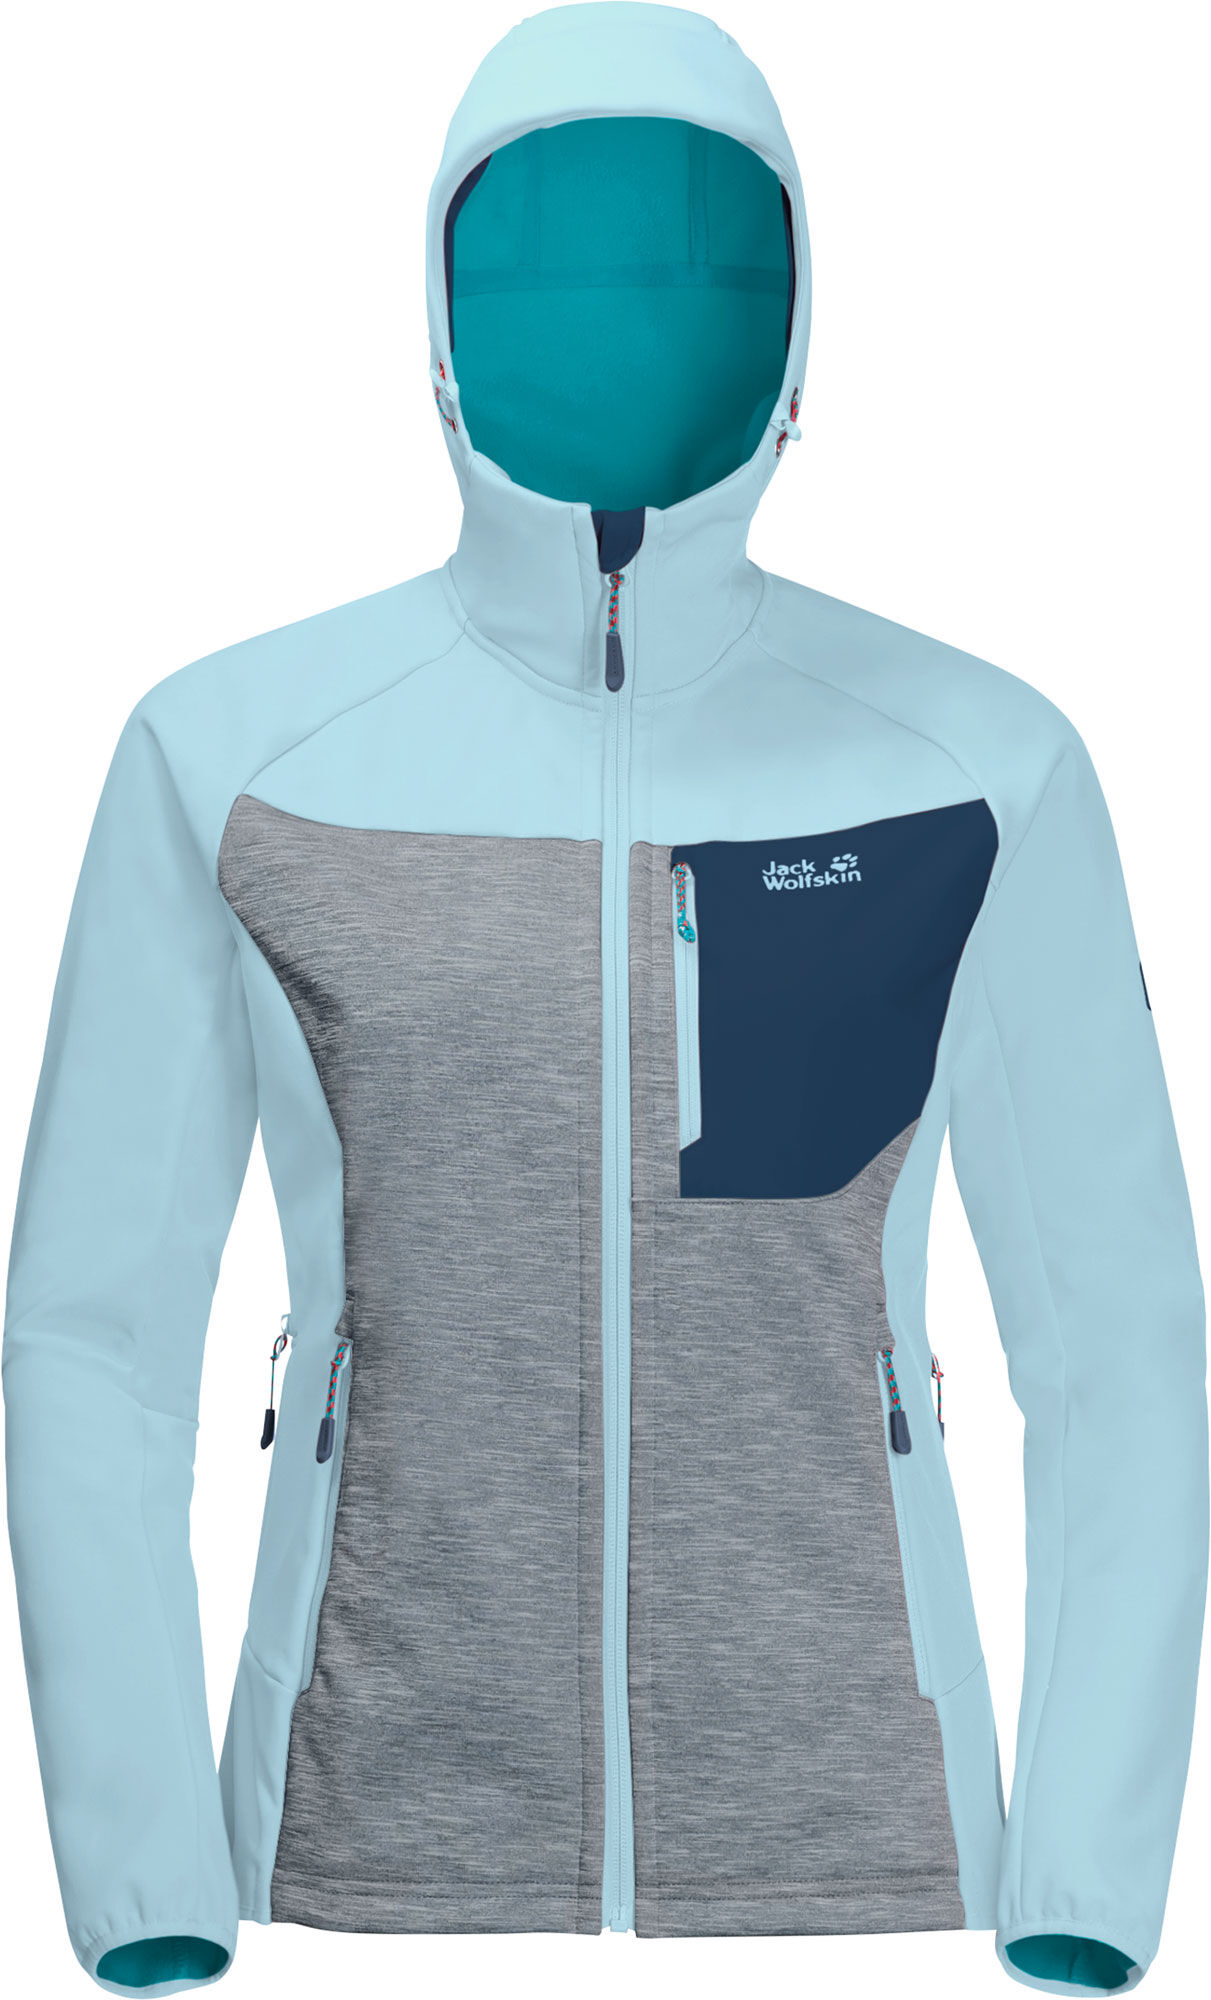 Jack Wolfskin® Onlineshop | INTERSPORT